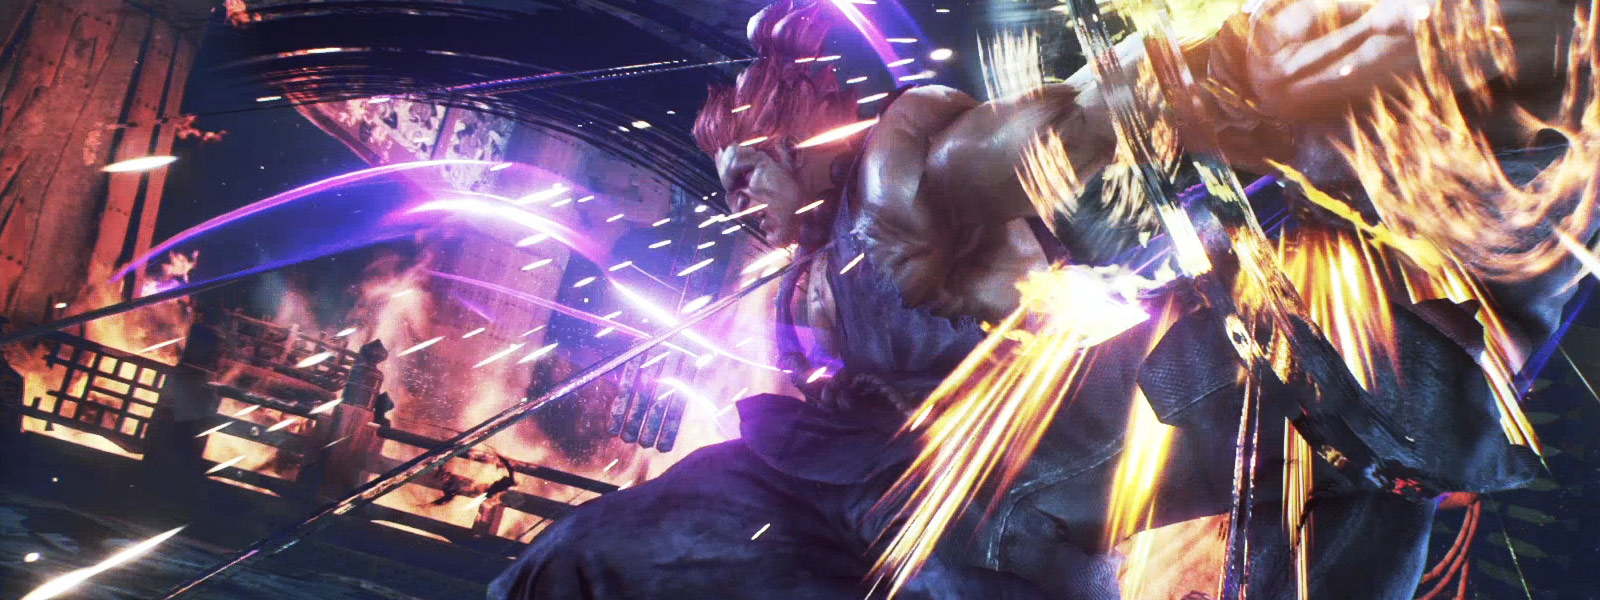 Akuma using his fireball attack